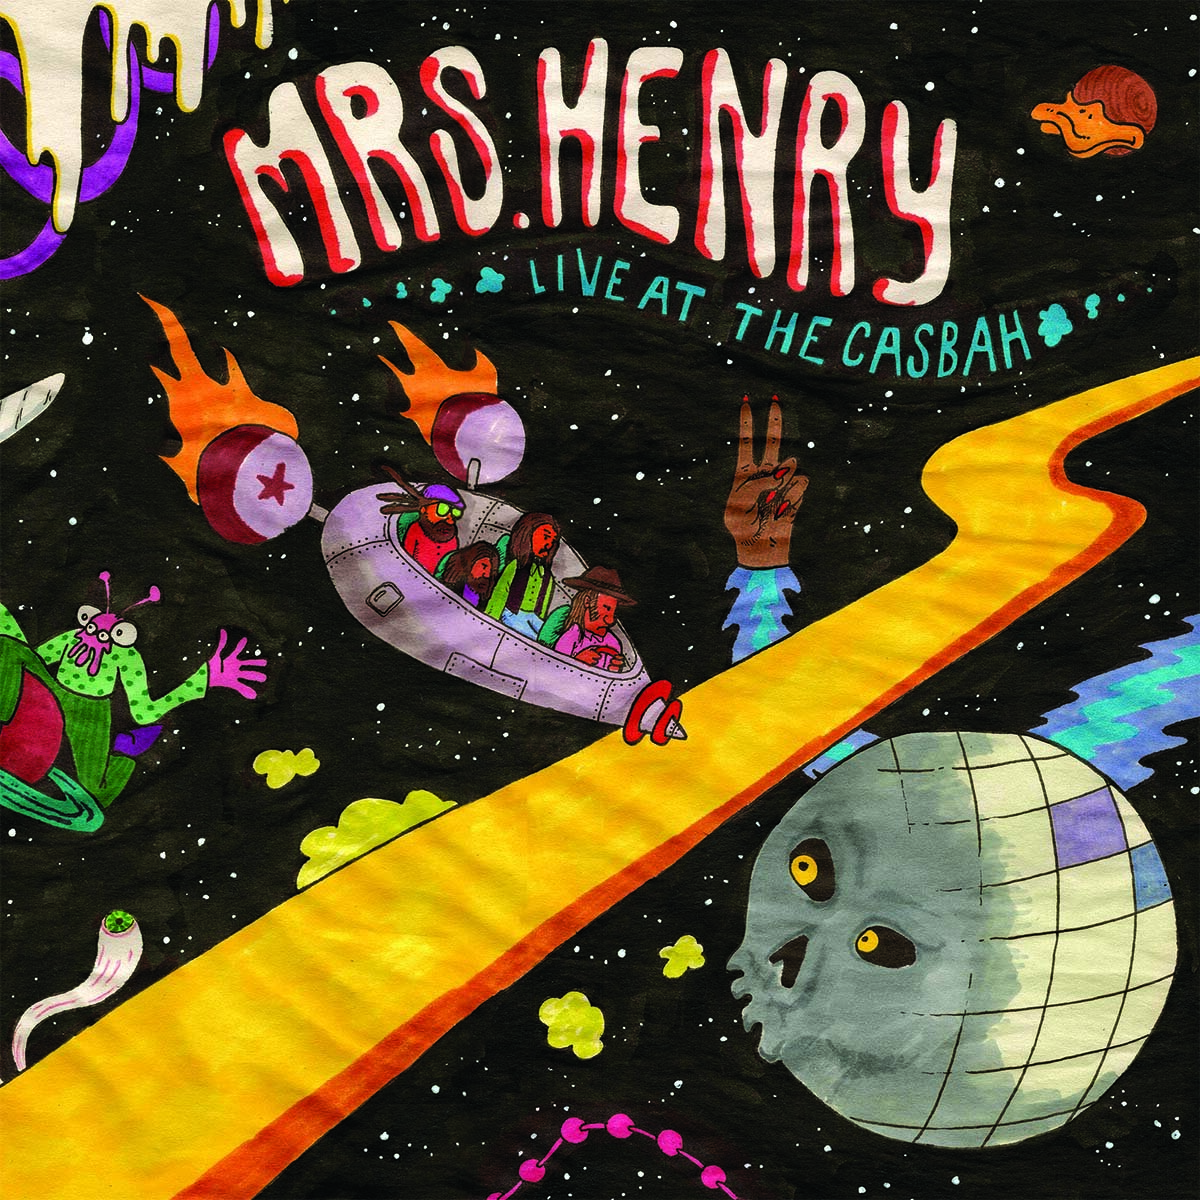 Mrs. Henry - Live At The Casbah